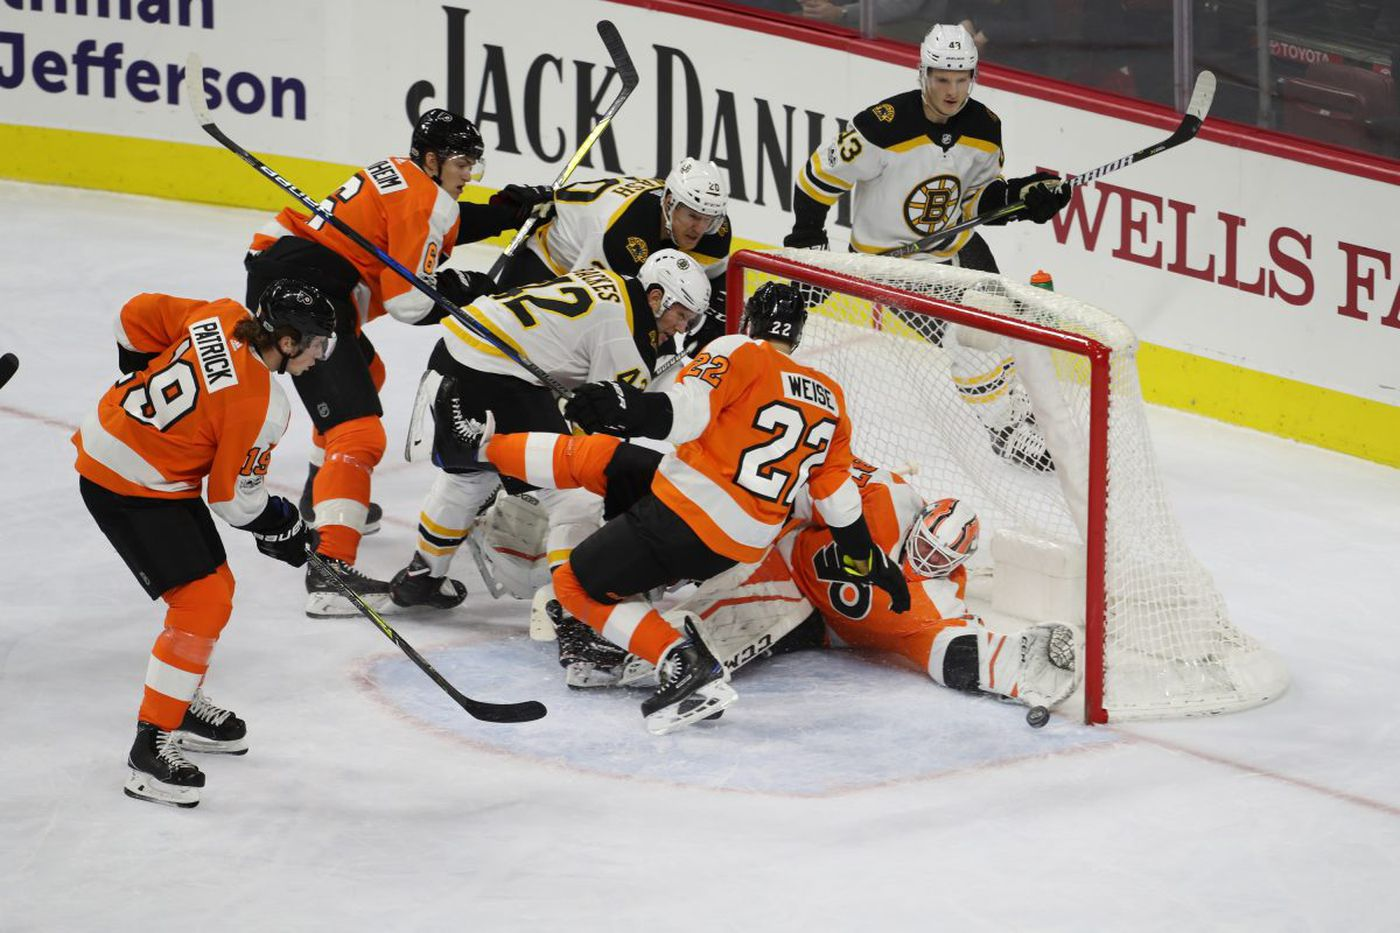 Flyers' losing streak extends to 10 games in loss to Boston